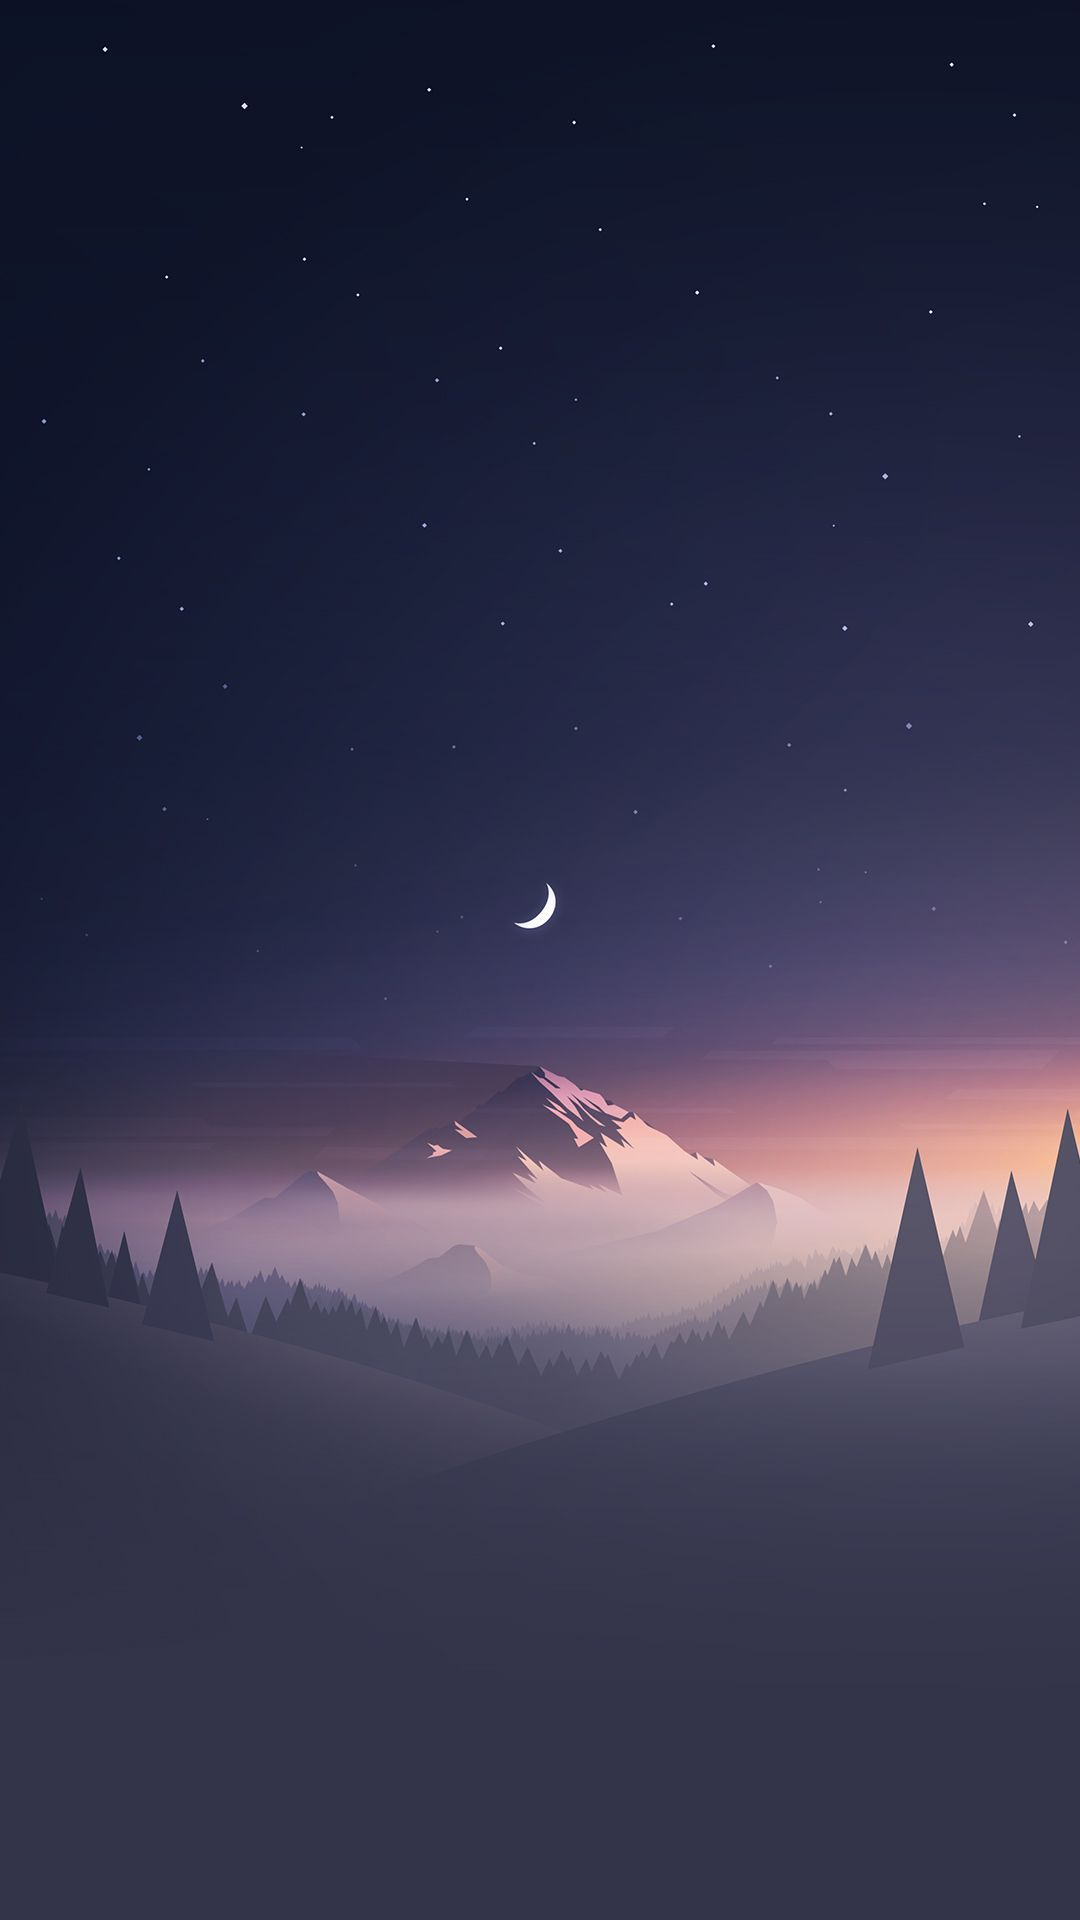 Stars And Moon Winter Mountain Landscape  iPhone 8 Wallpapers